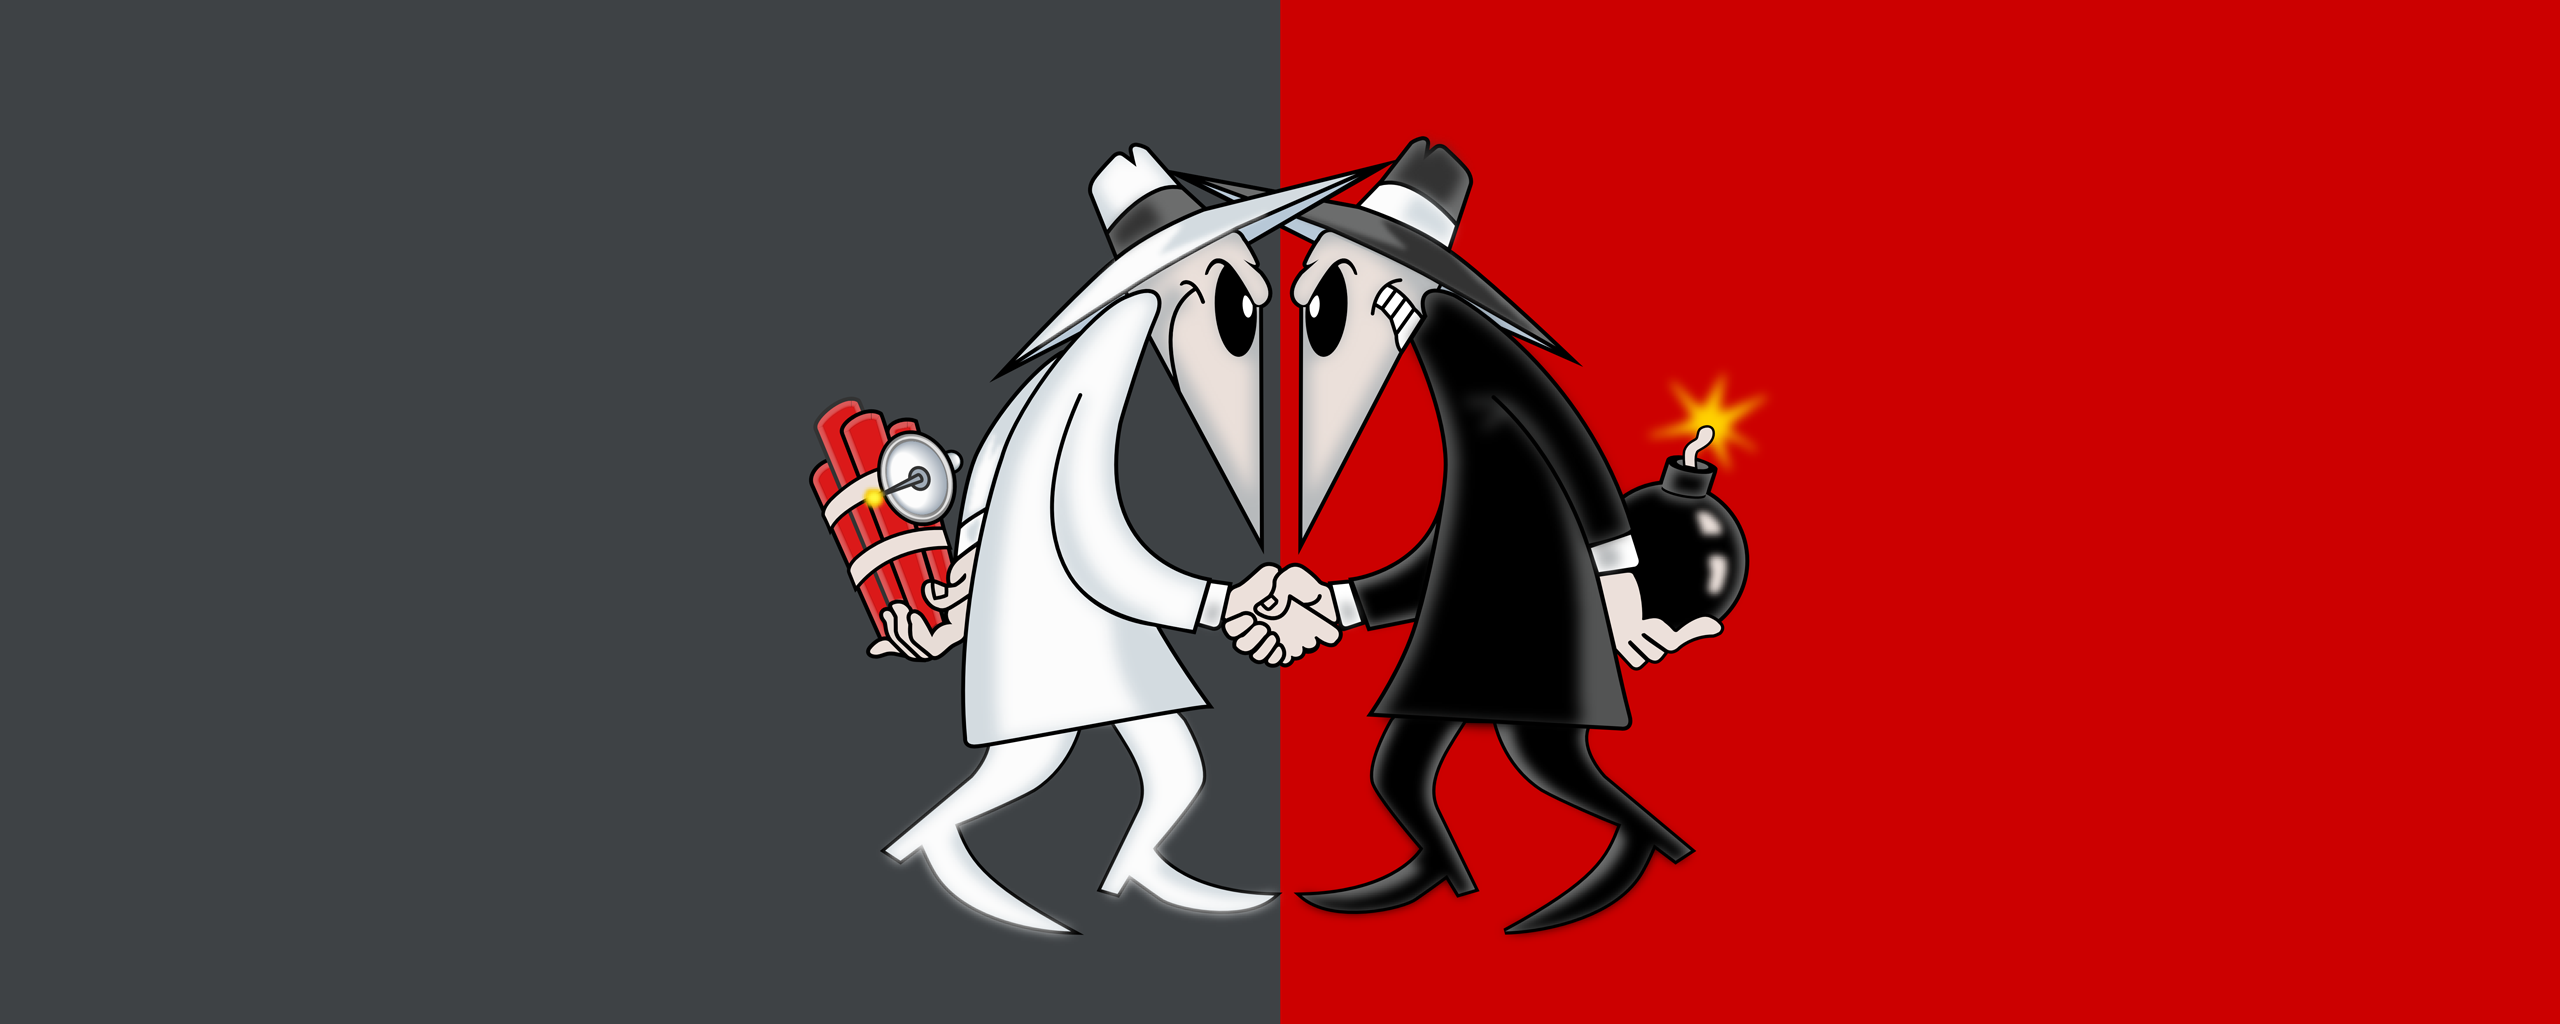 Spy Vs Spy Wallpaper